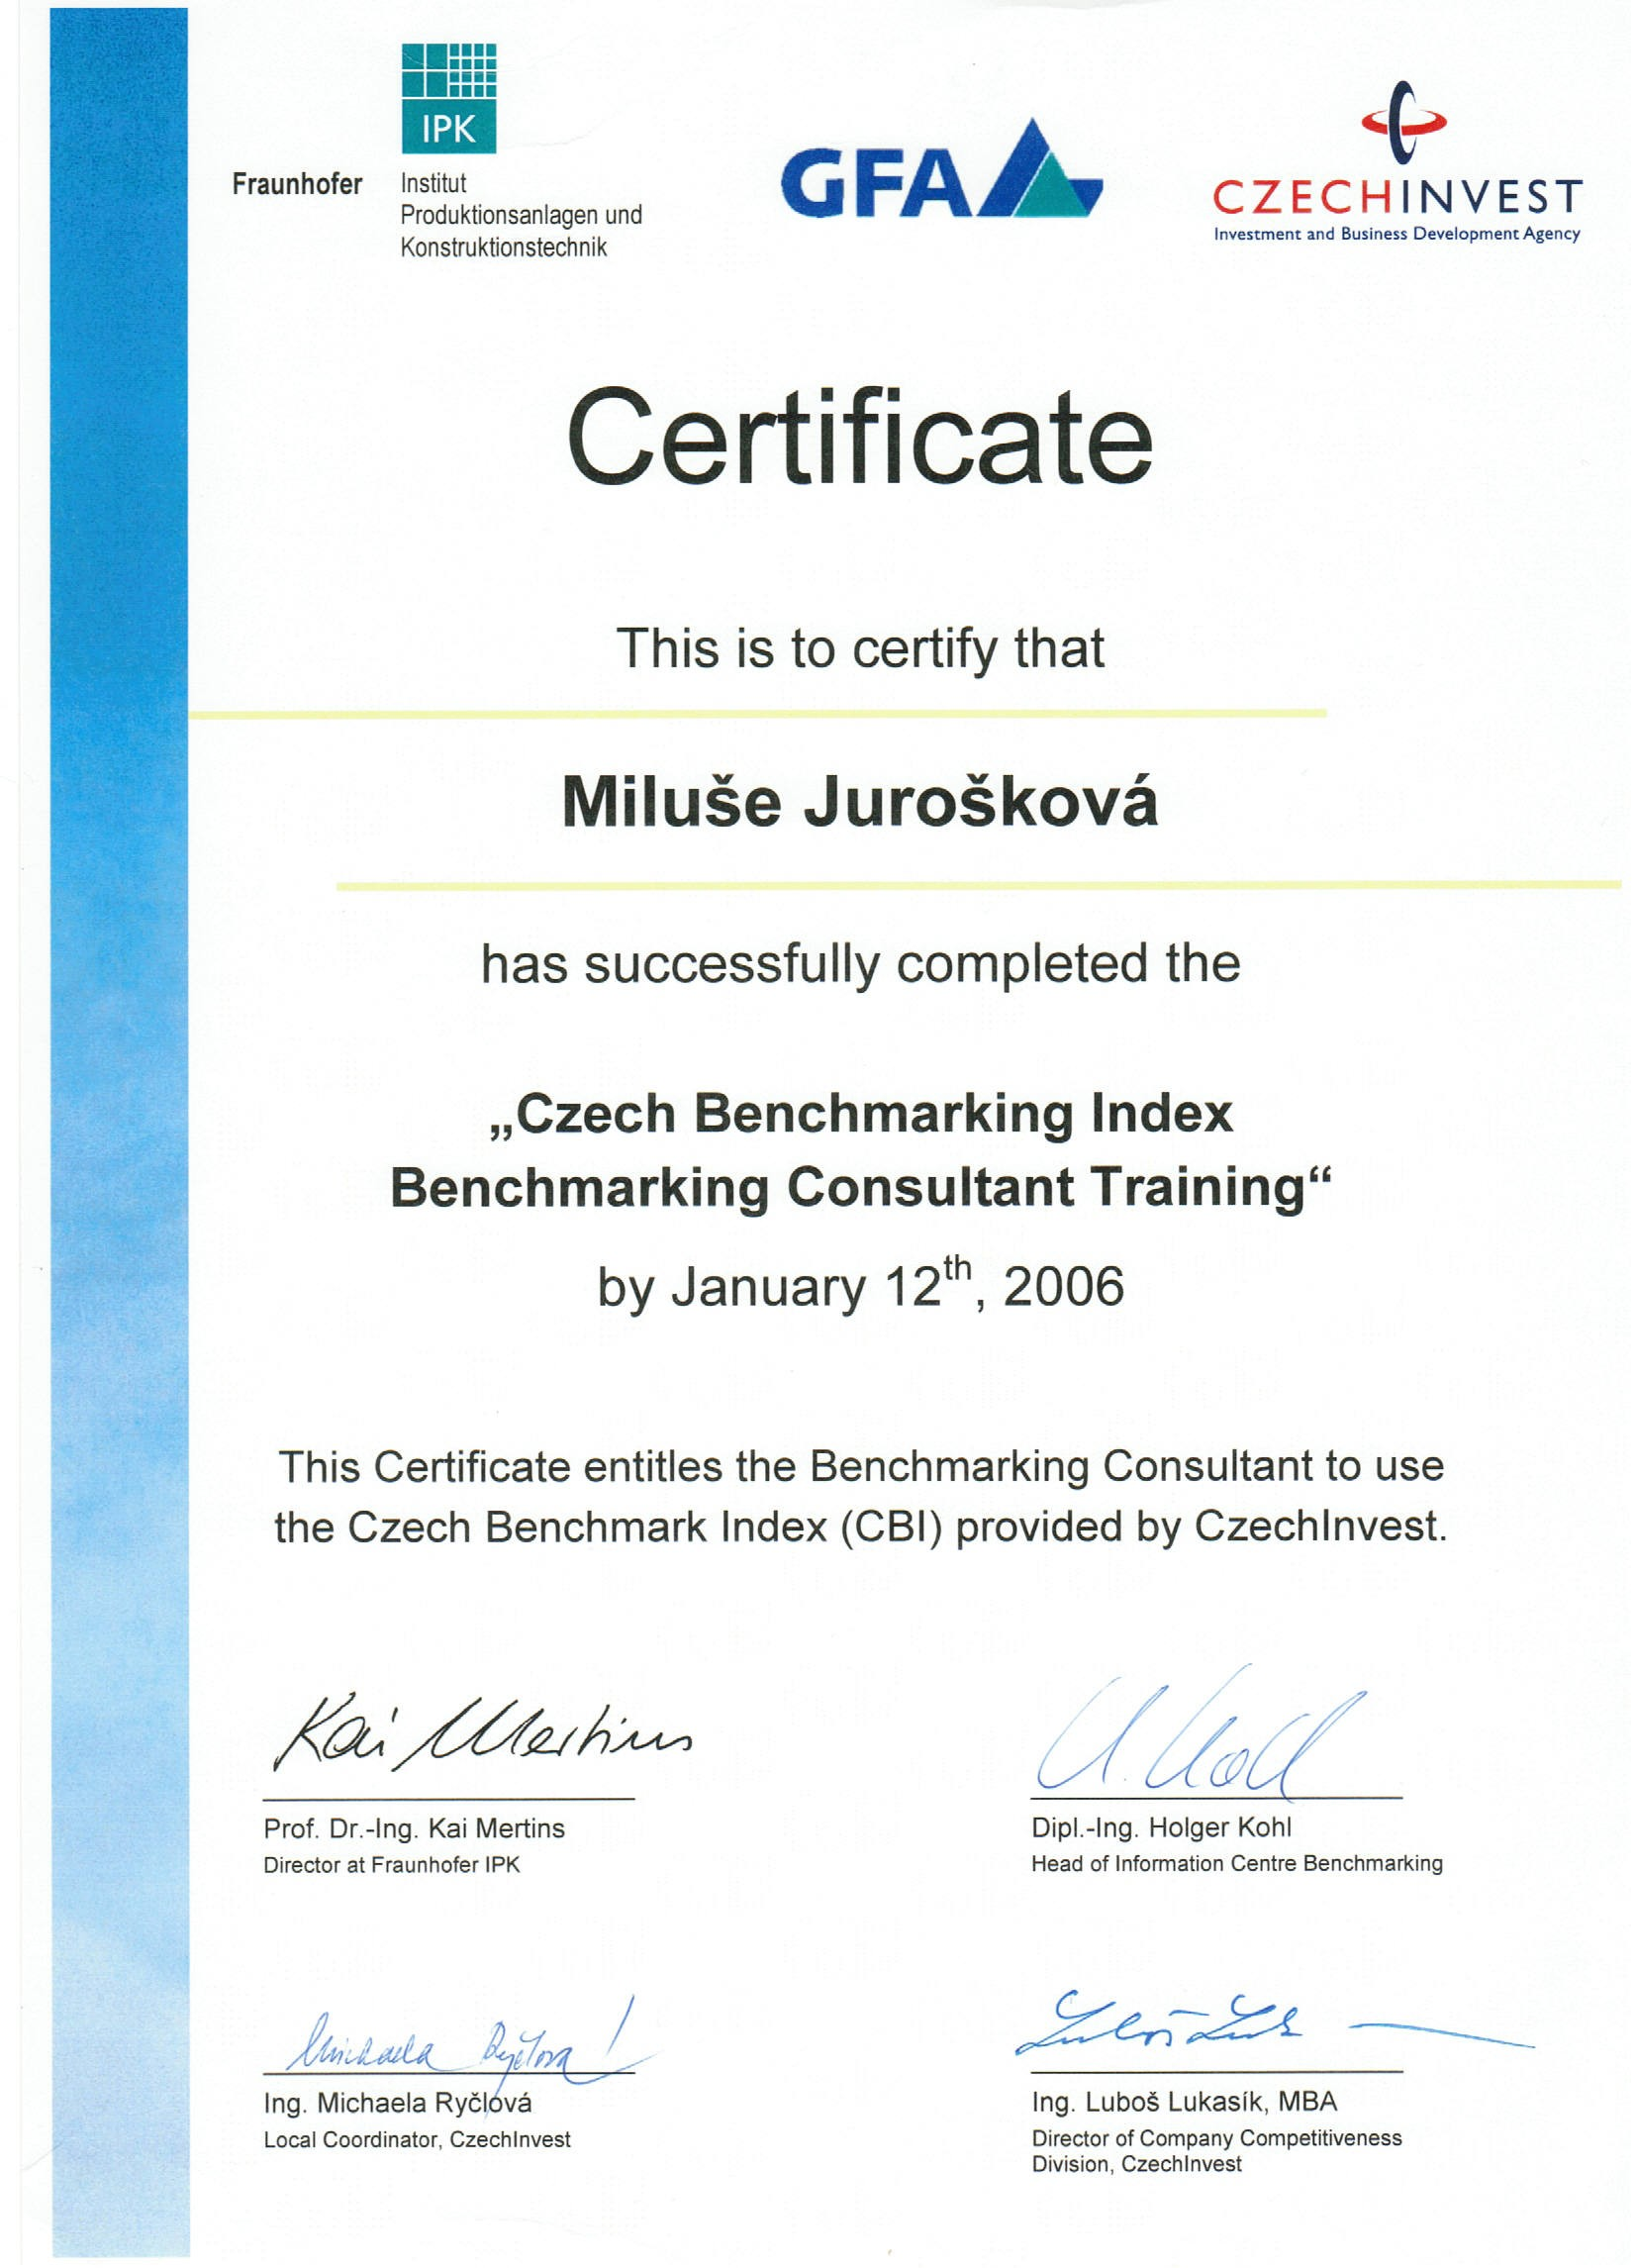 Benchmarking Consultant, CzechInvest